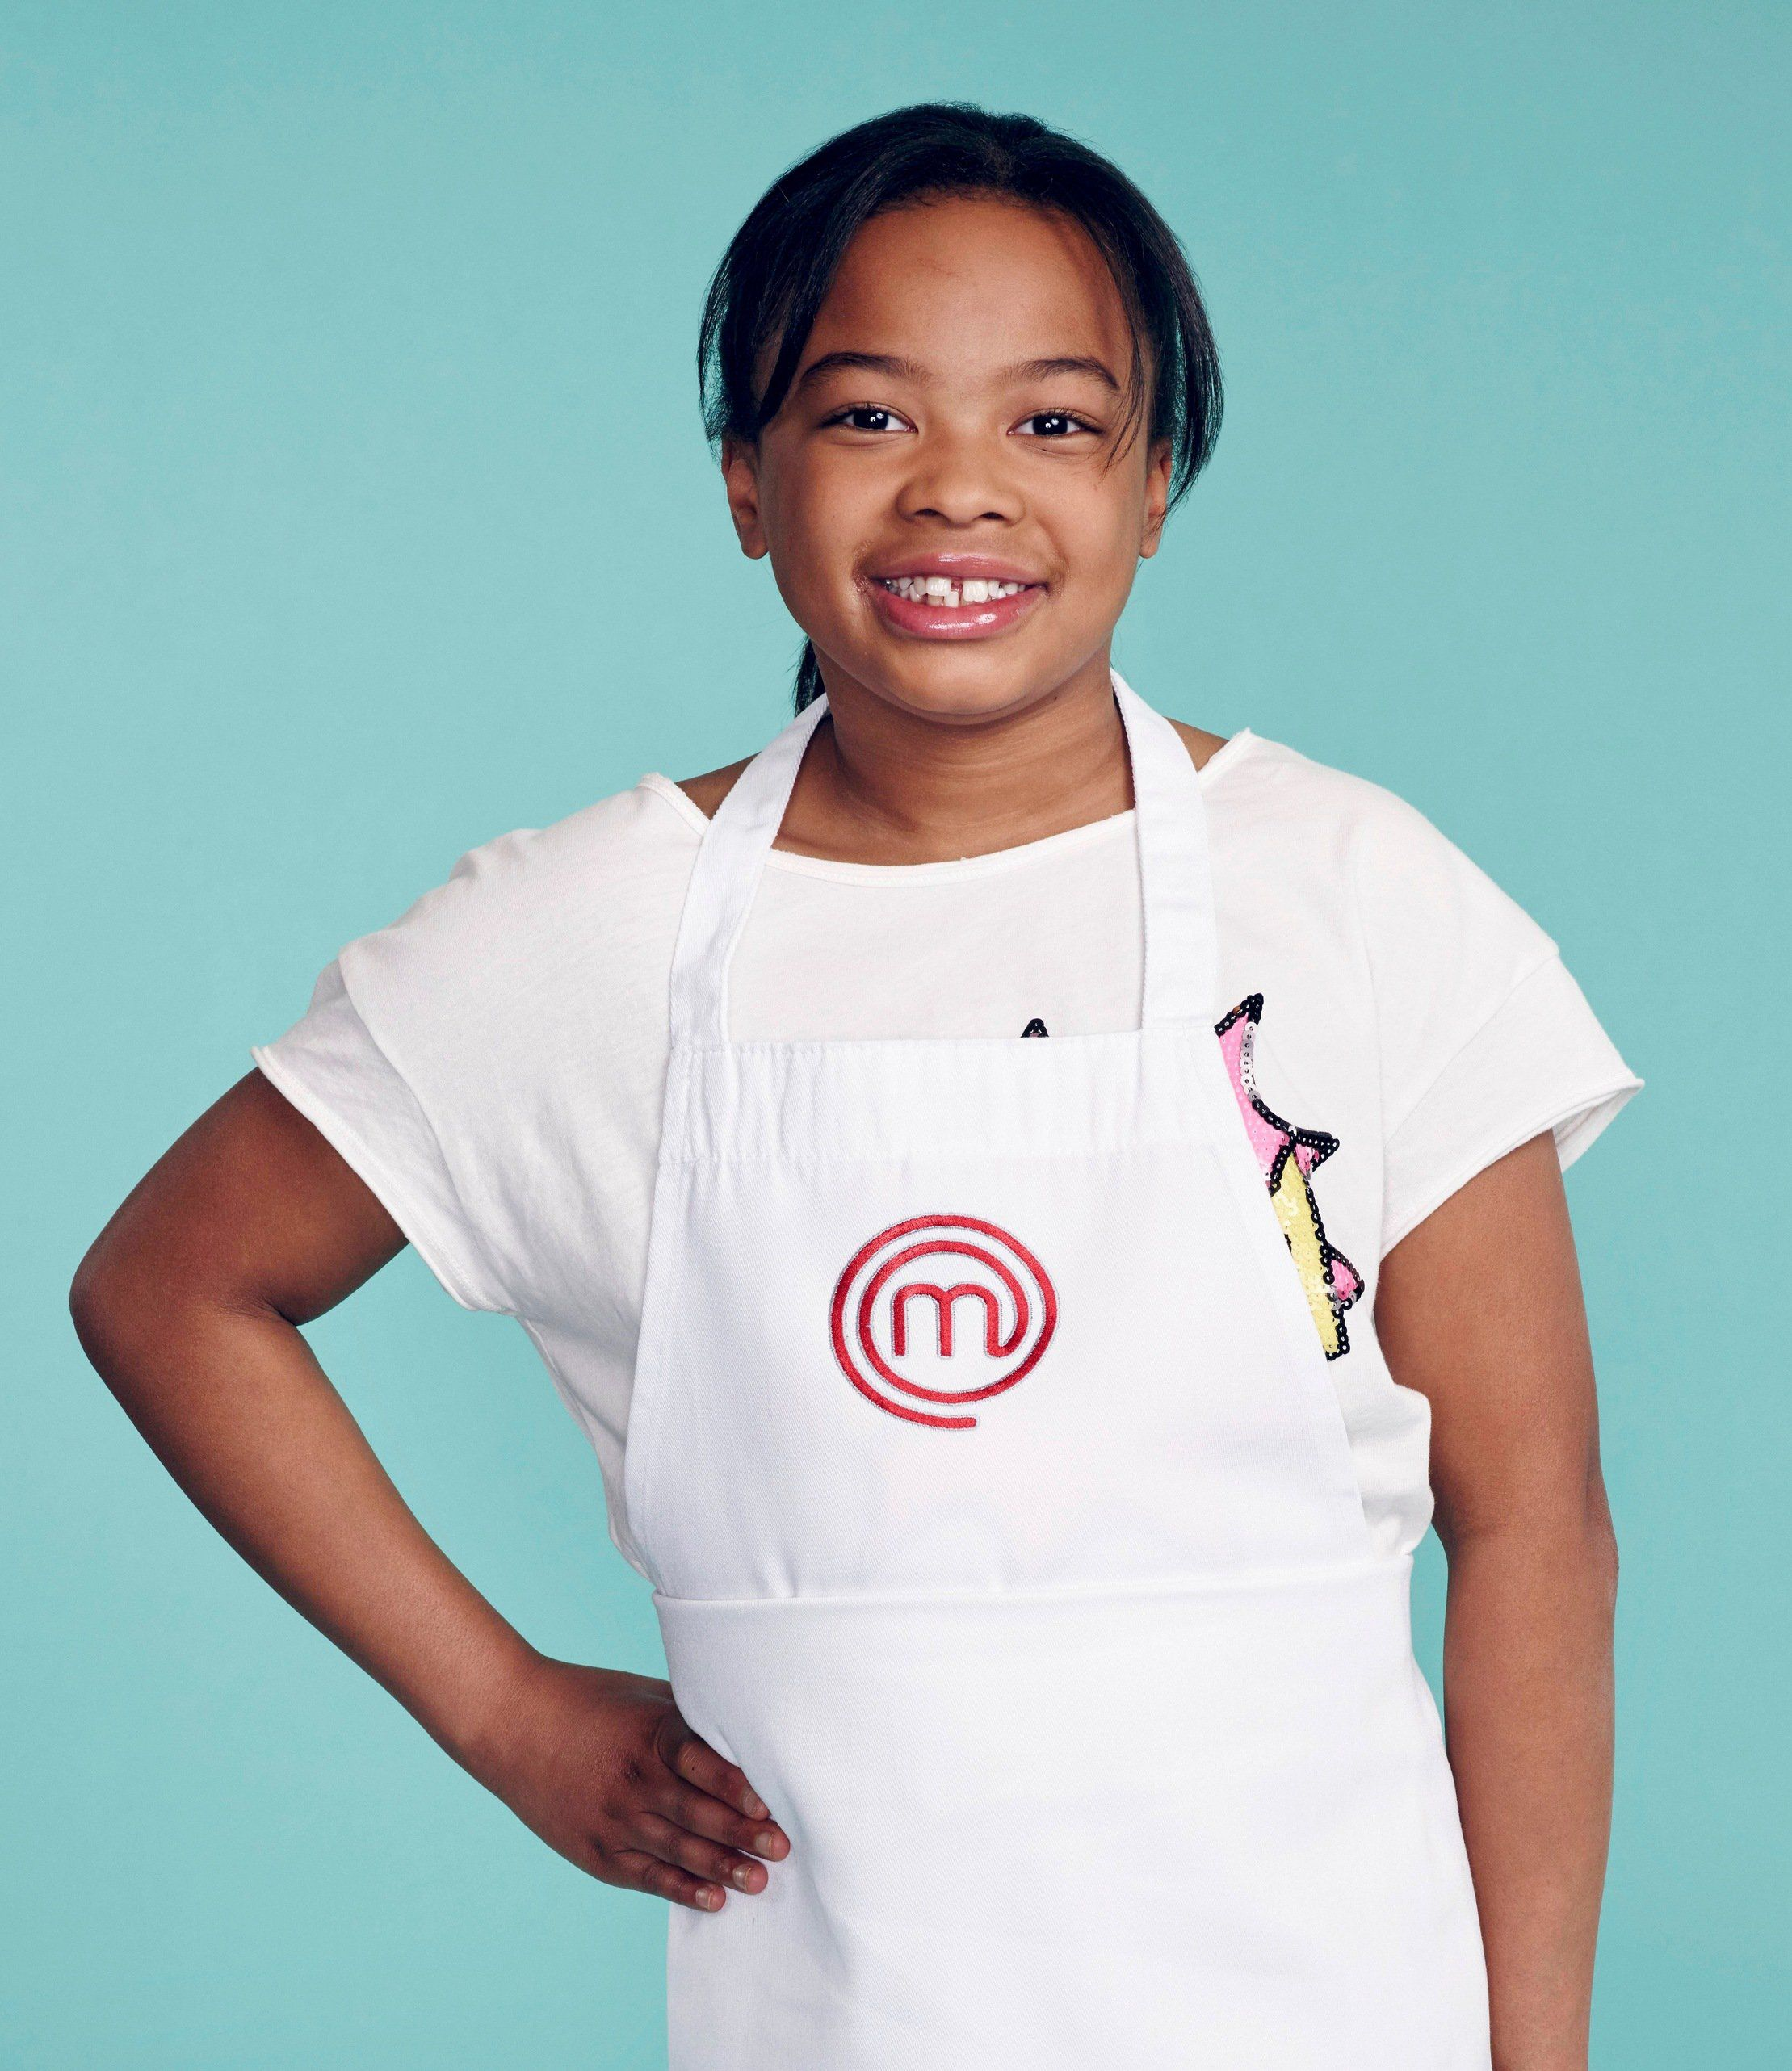 MASTERCHEF: JUNIOR EDITION: Contestant Ayla, 11, from St. Louis, MO ...